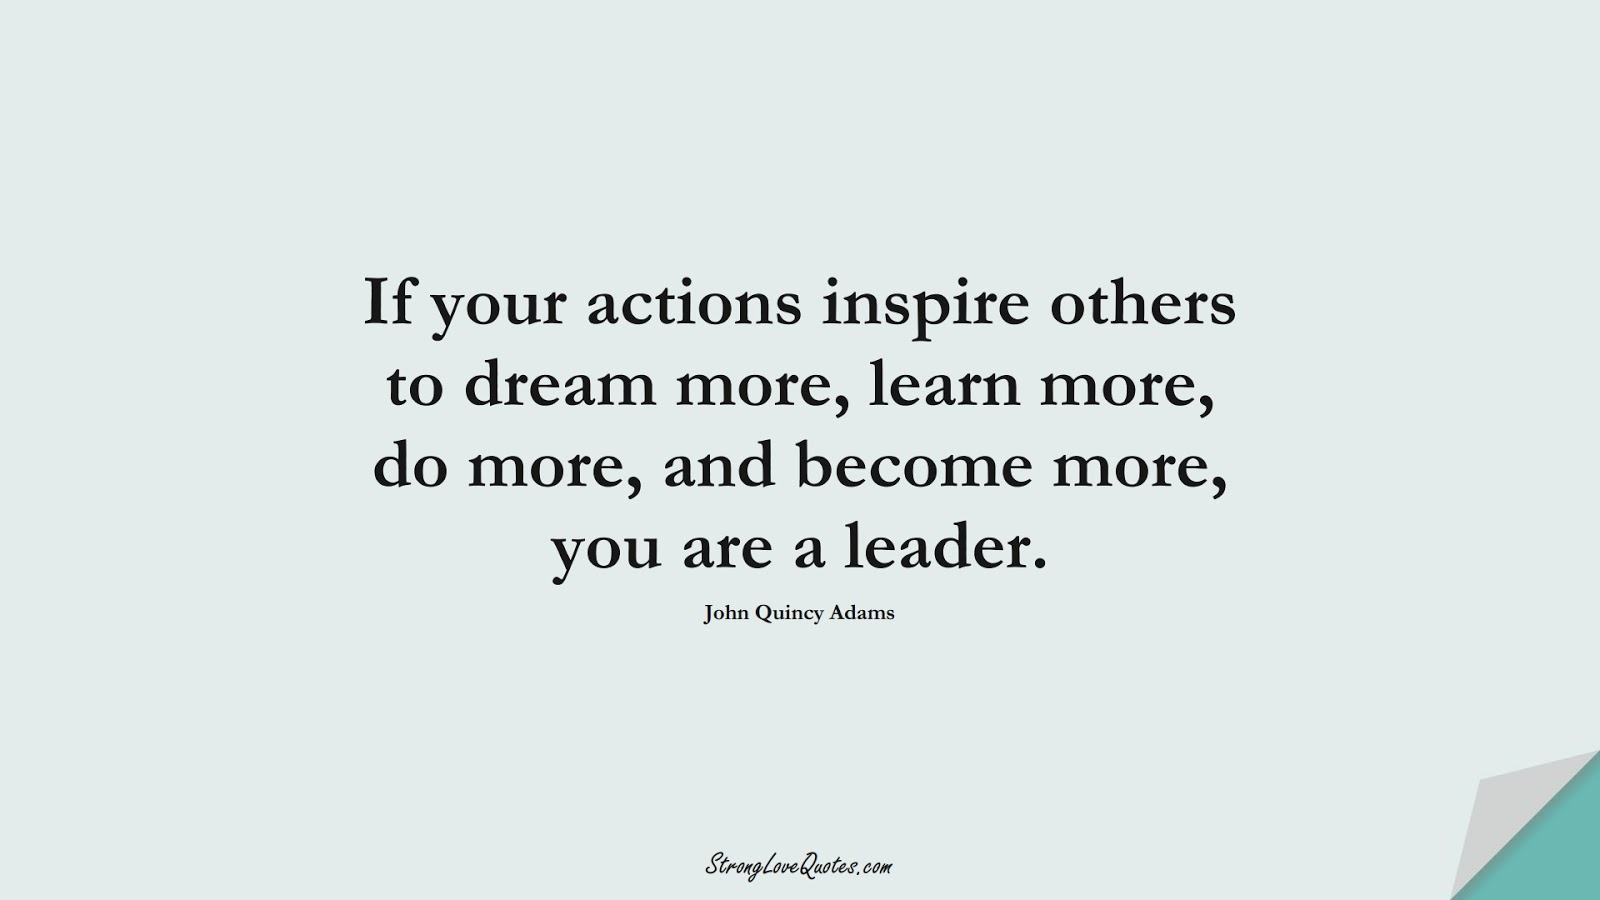 If your actions inspire others to dream more, learn more, do more, and become more, you are a leader. (John Quincy Adams);  #LearningQuotes